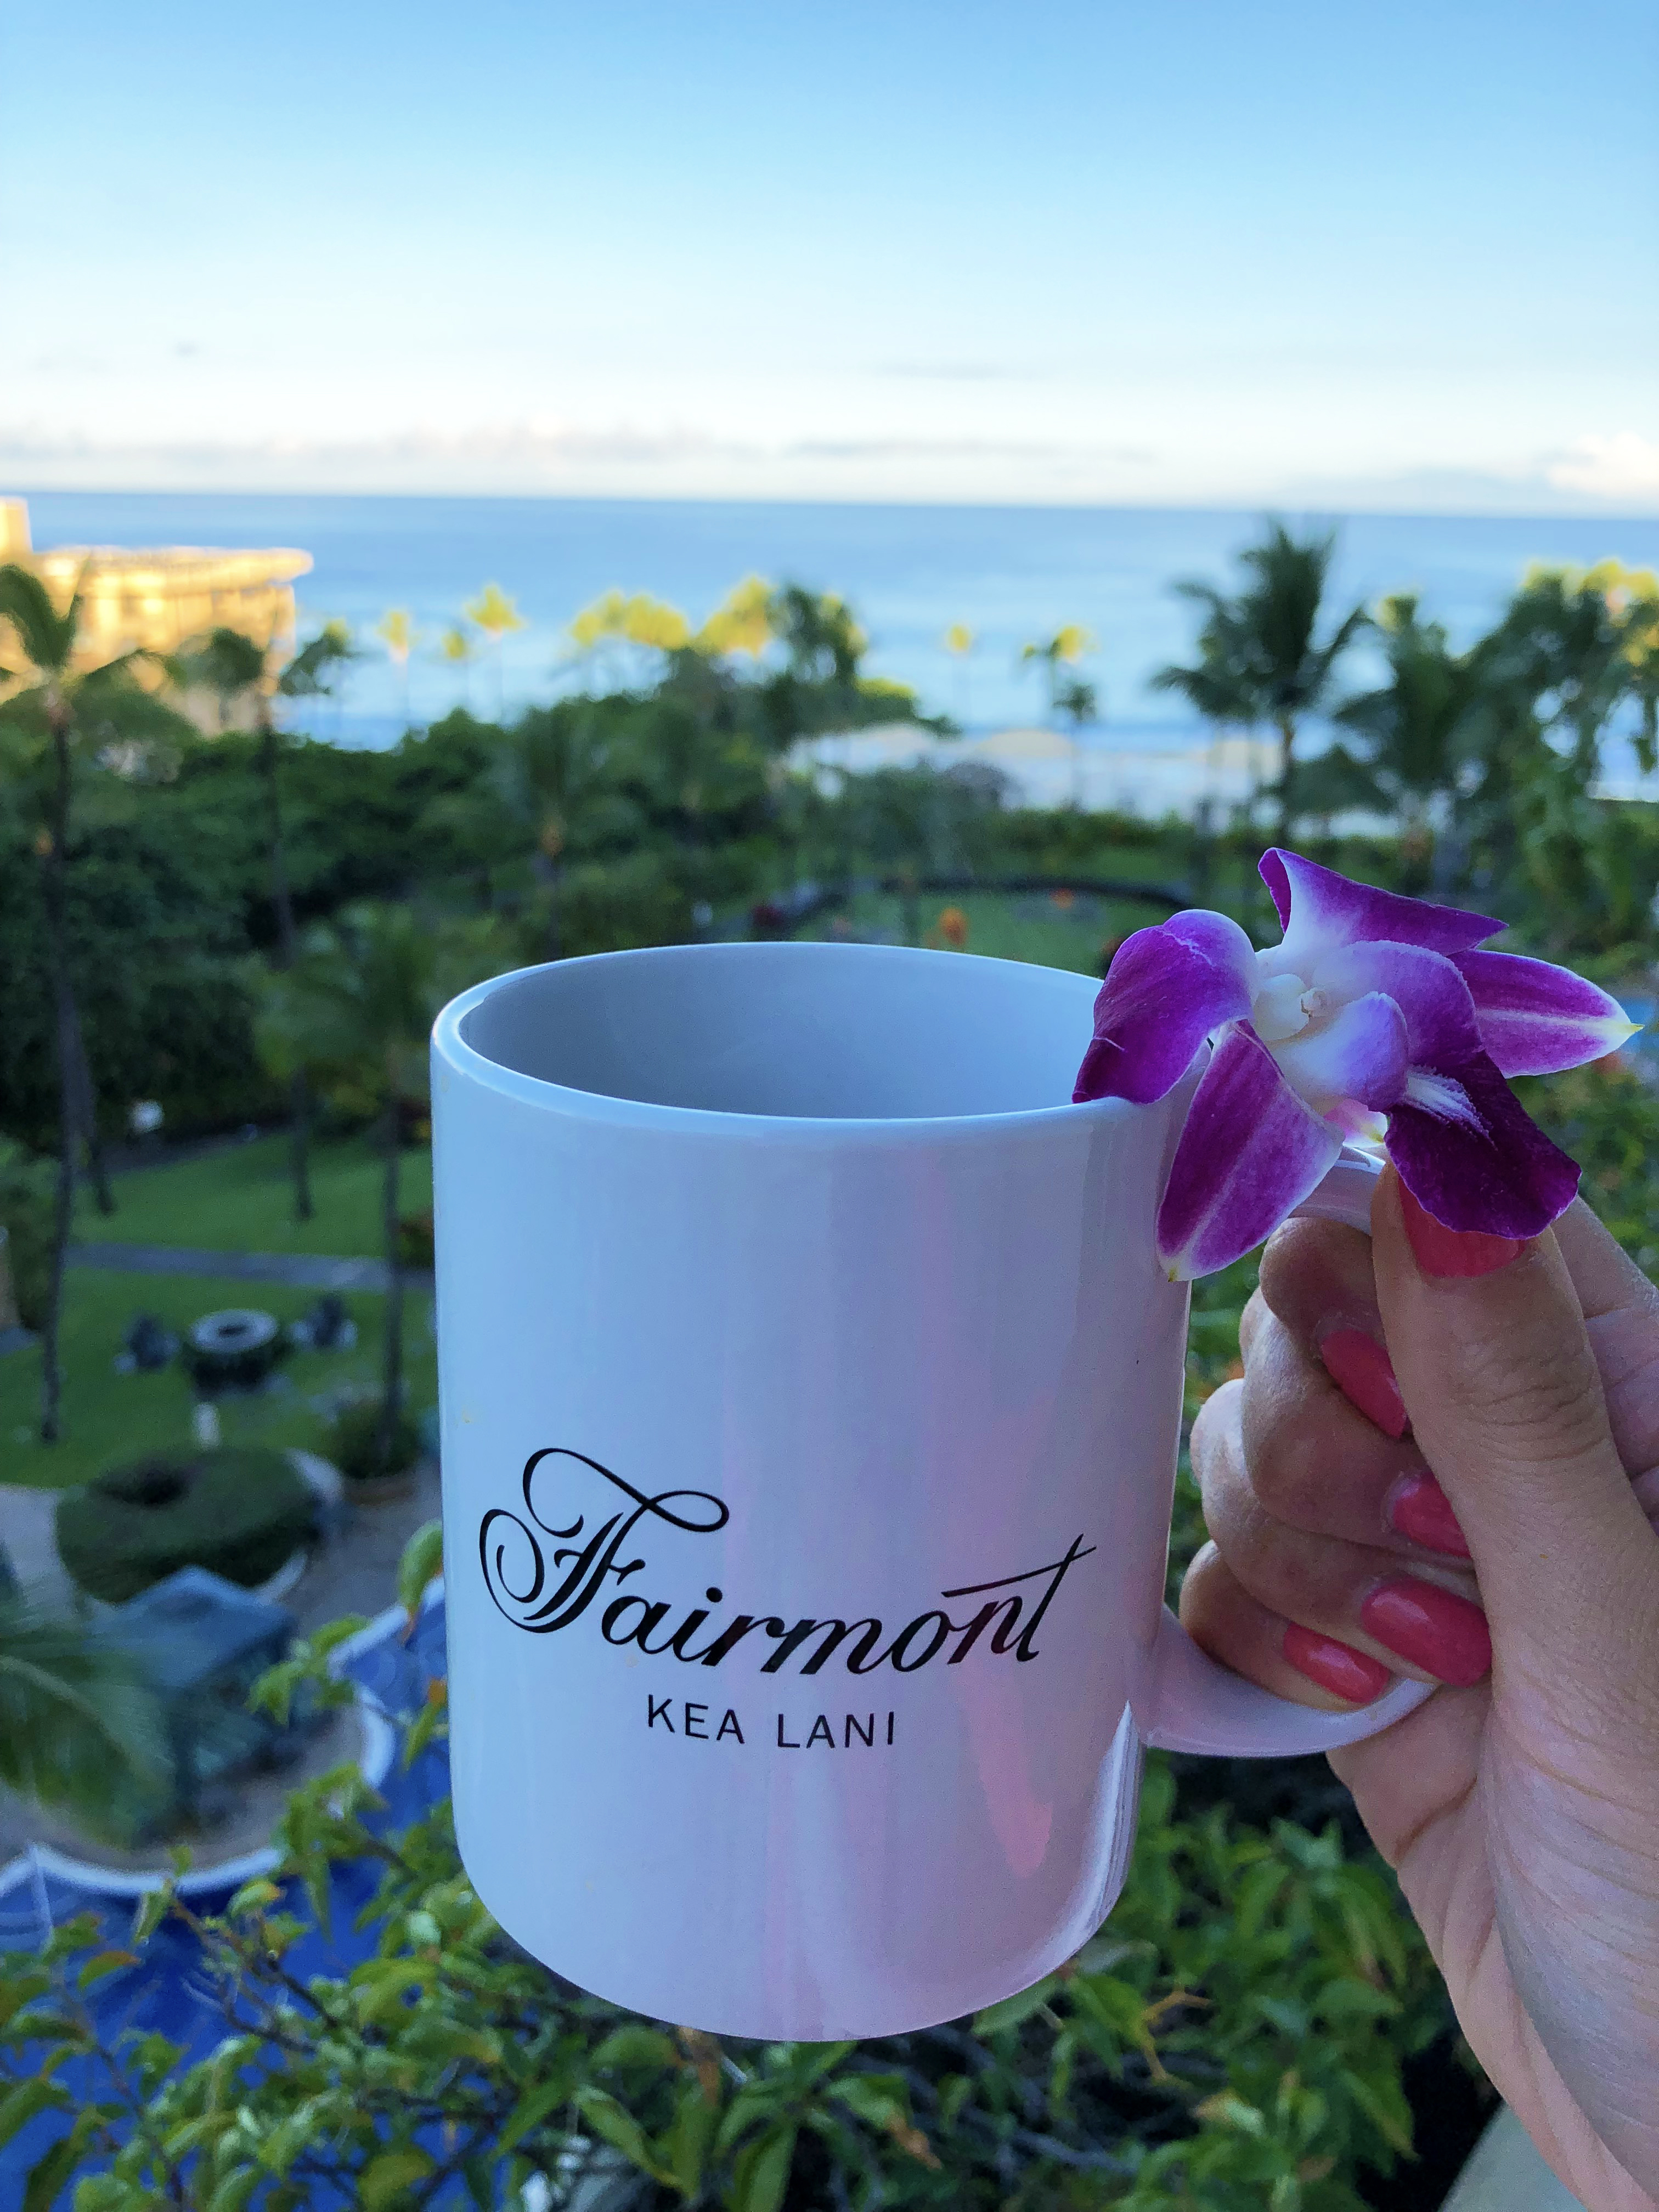 Fairmont Kea Lani KO Nicks Fishmarket Maui Hawaii